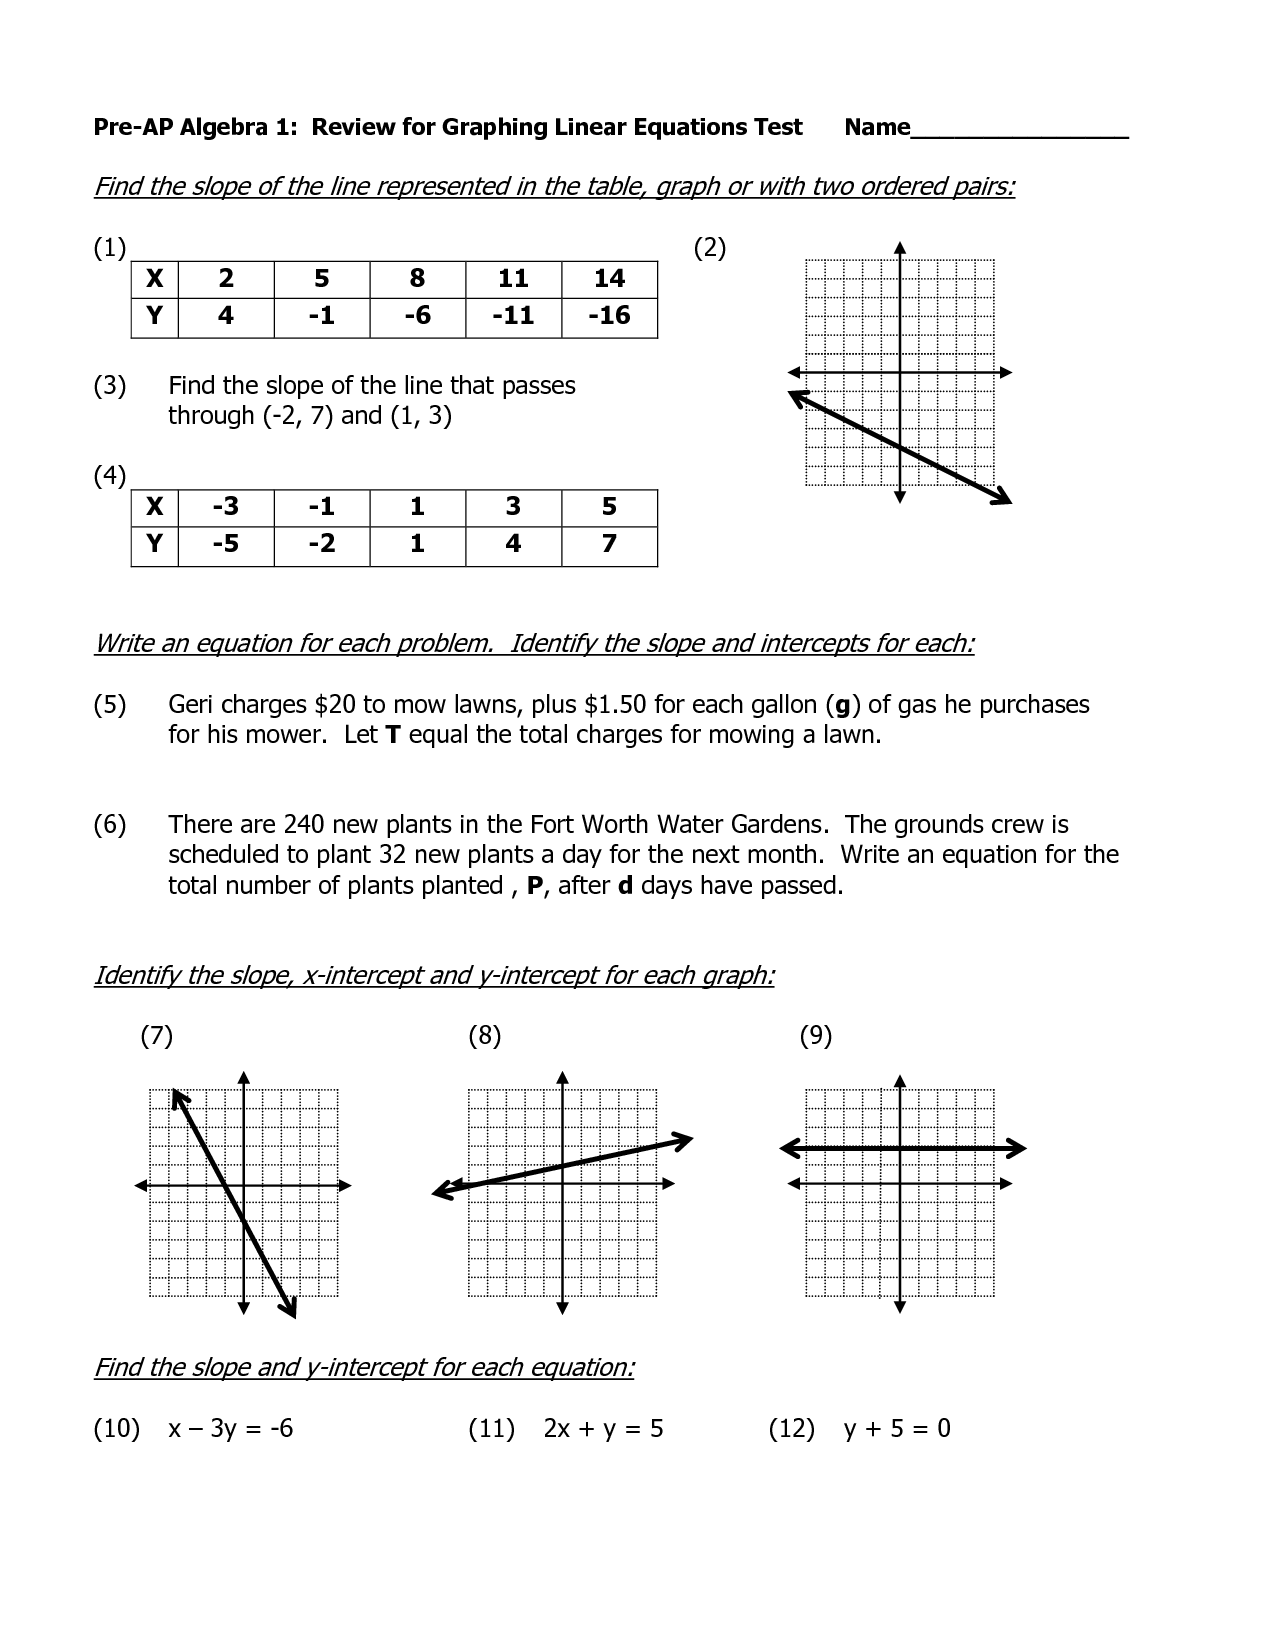 Pinmoss Hathcock On Algebra | Graphing Linear Equations